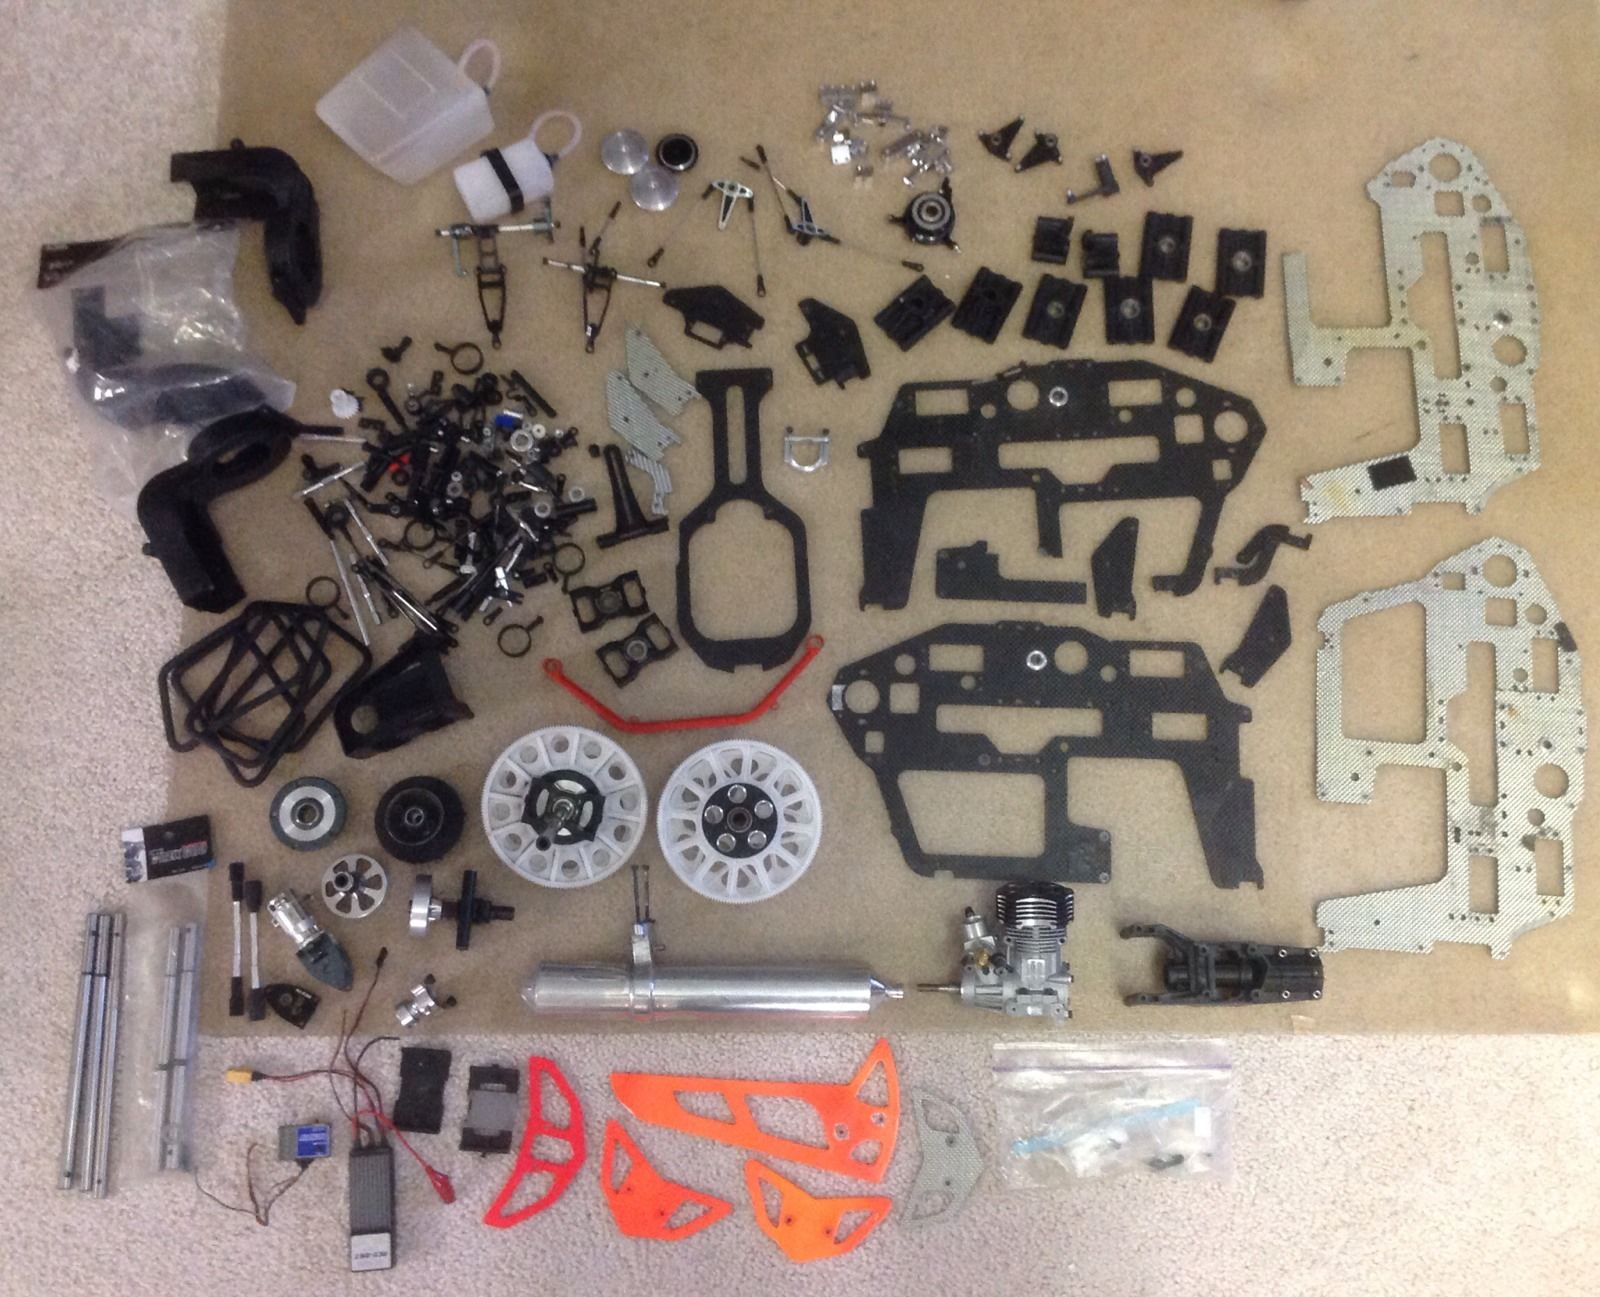 Click image for larger version  Name:rc helicopter parts 01.JPG Views:60 Size:296.4 KB ID:1991206